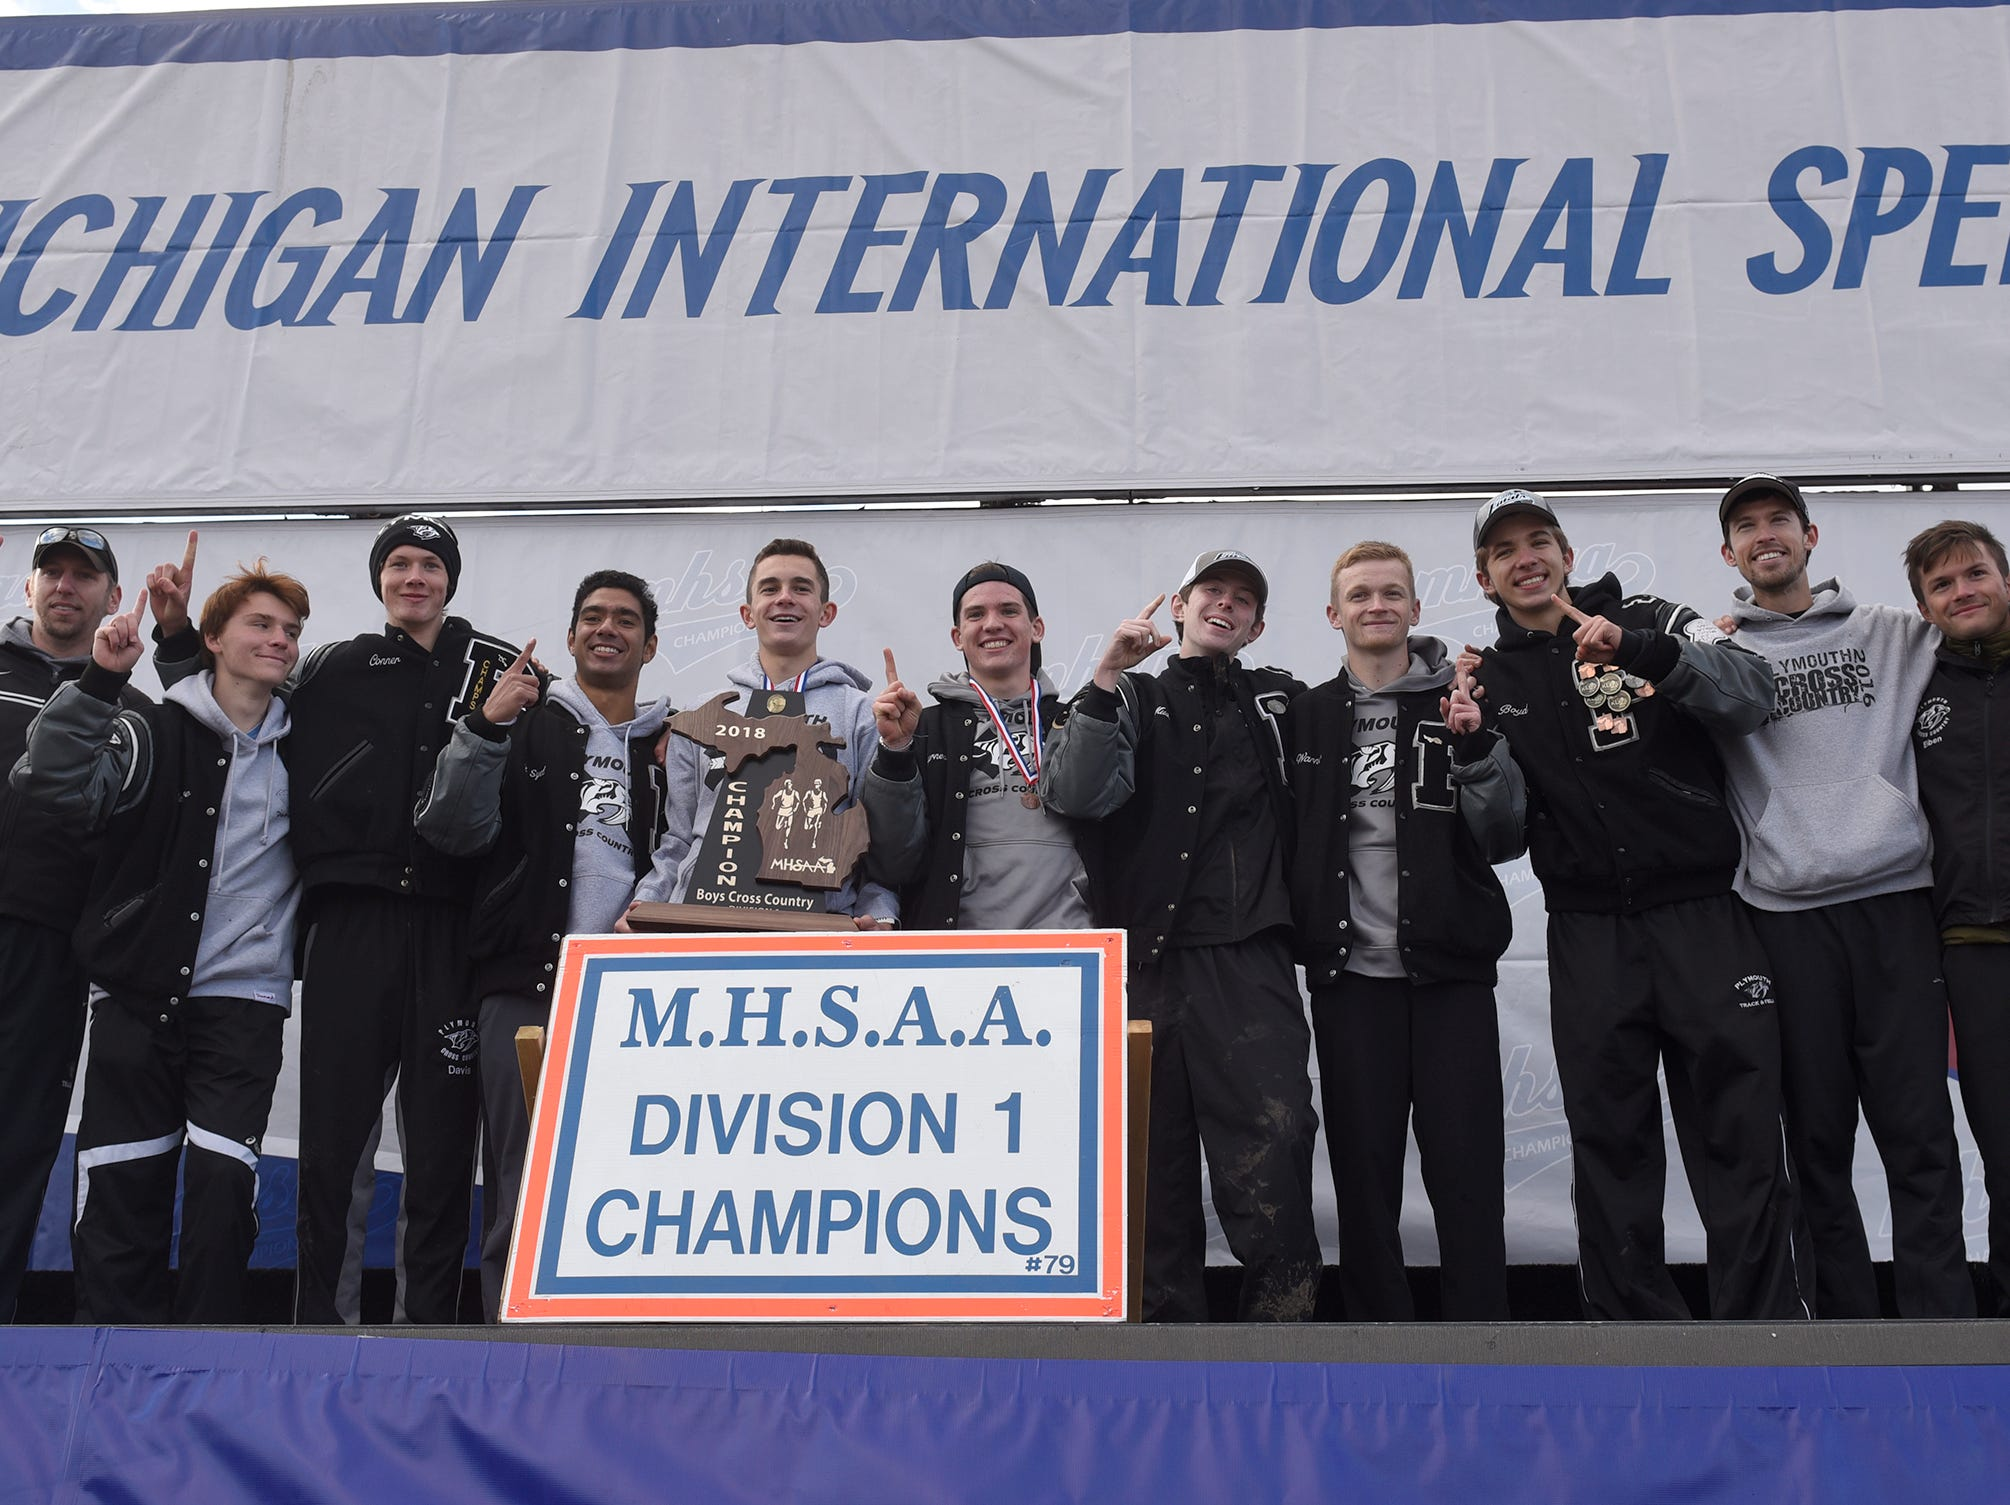 Plymouth poses with the Division 1 teaam trophy at the 2018 cross country finals at Michigan International Speedway.